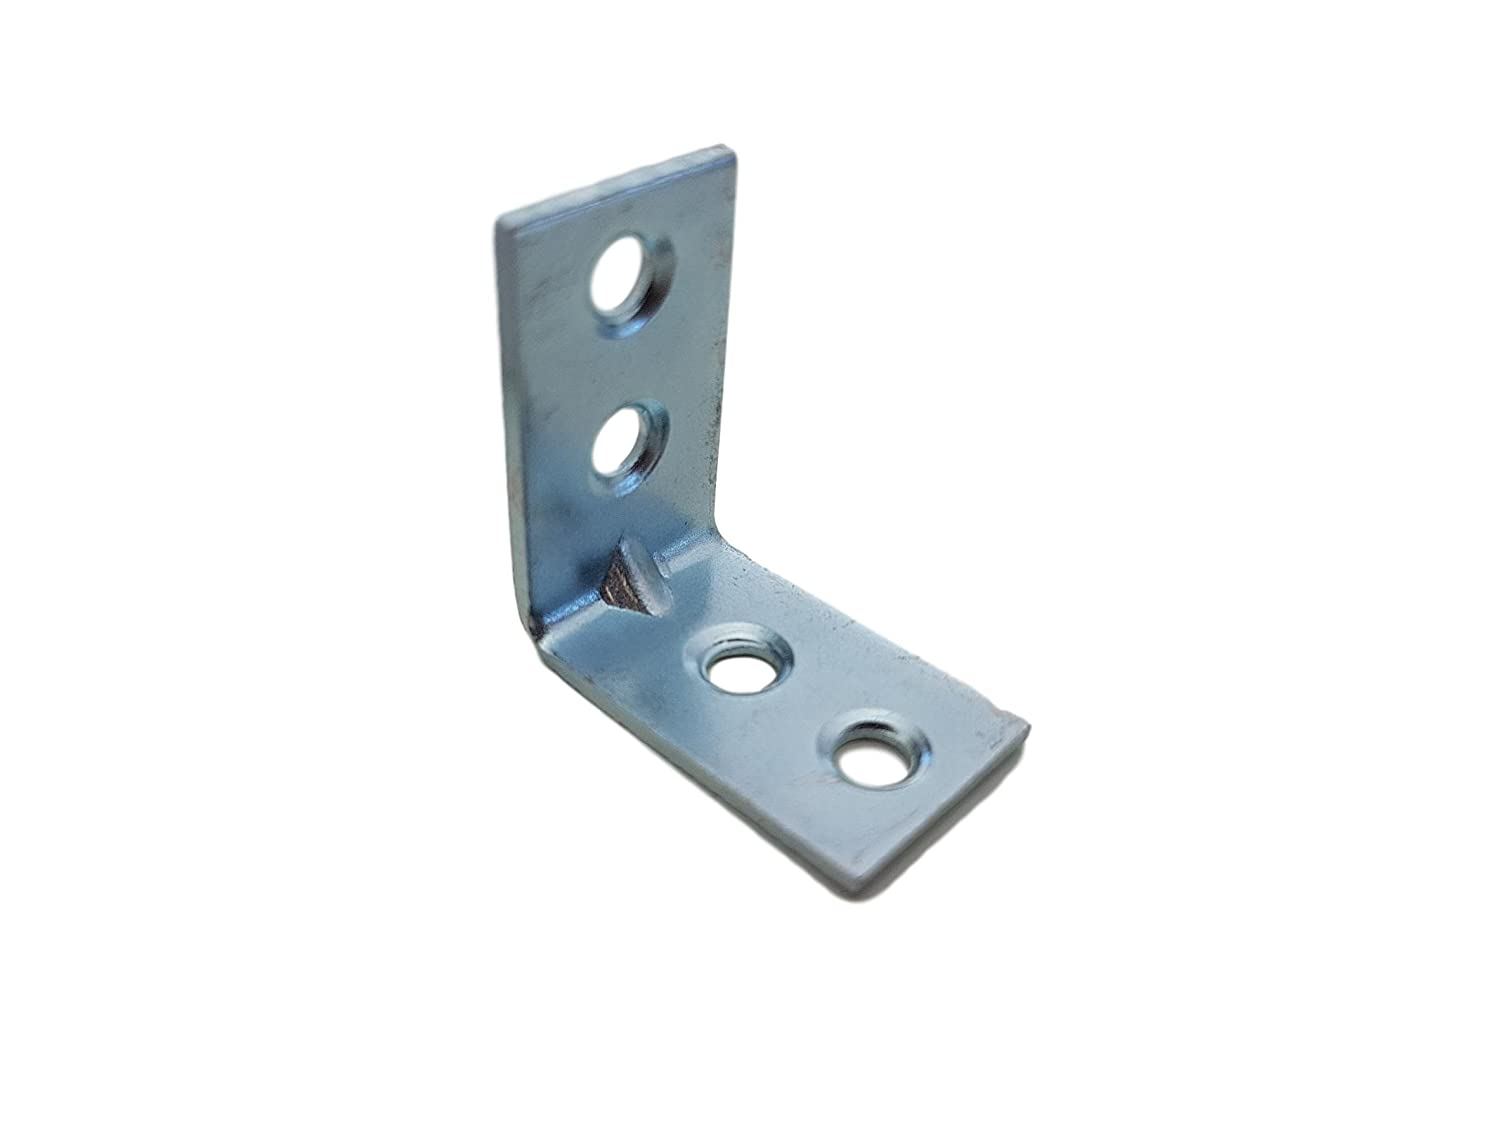 (Pack of 20 pcs) 30 x 30 mm Hardware Bright zc Zinc Plated Corner Joint 90 Degree Braces Brackets Plates Made in China